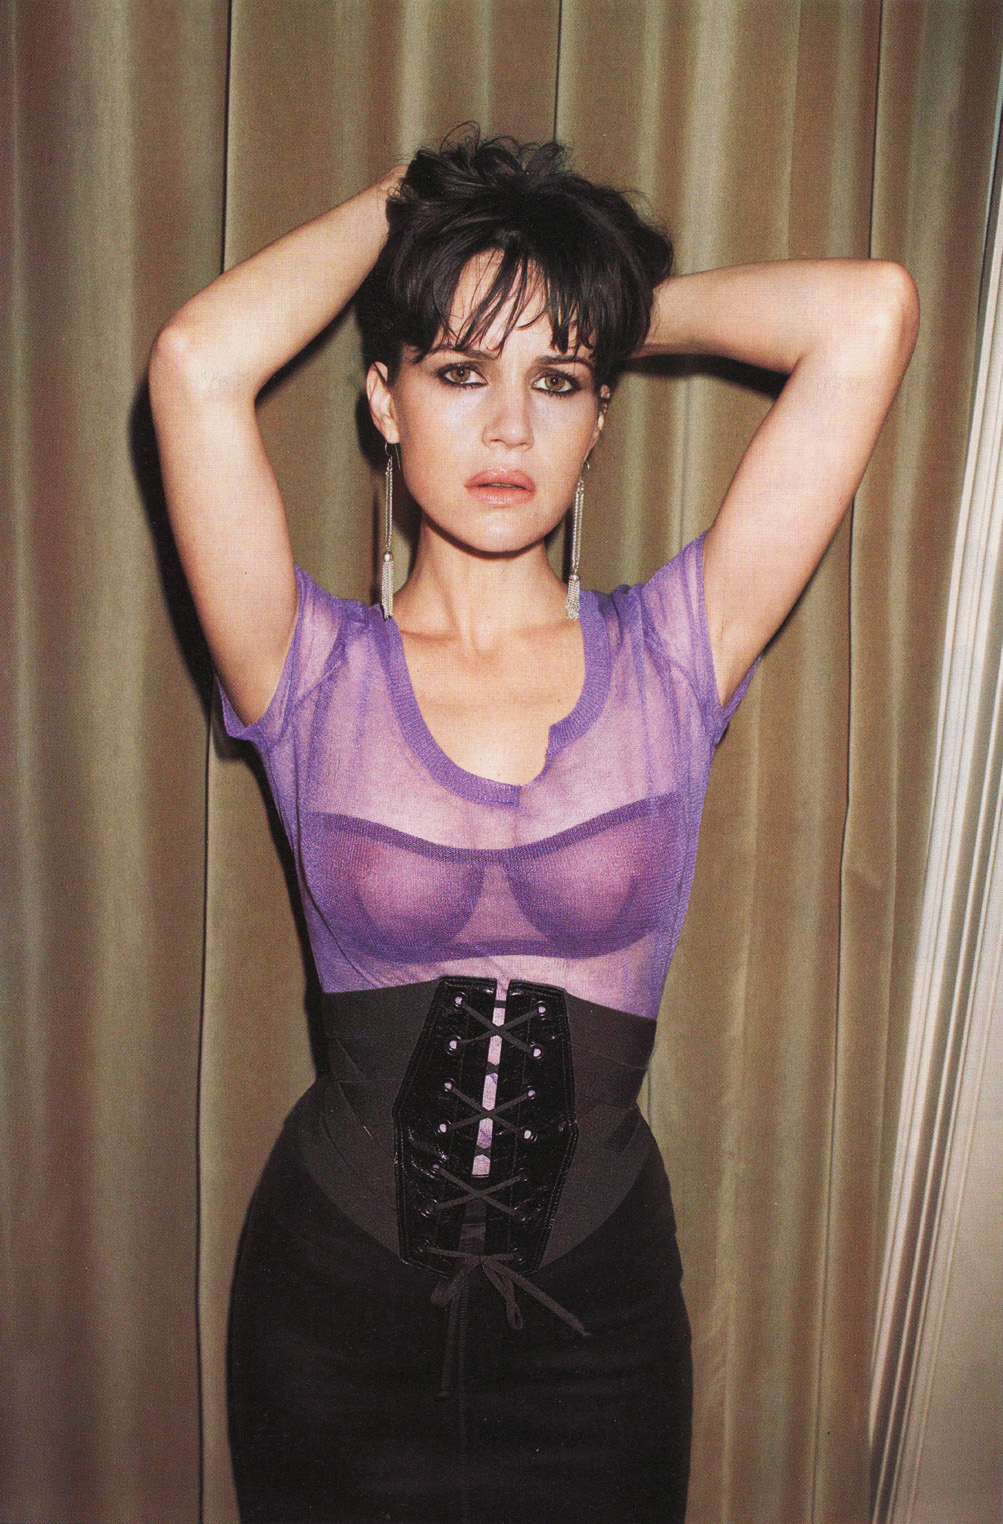 Carla Gugino [Watchmen] | FEMALE CELEBRITY